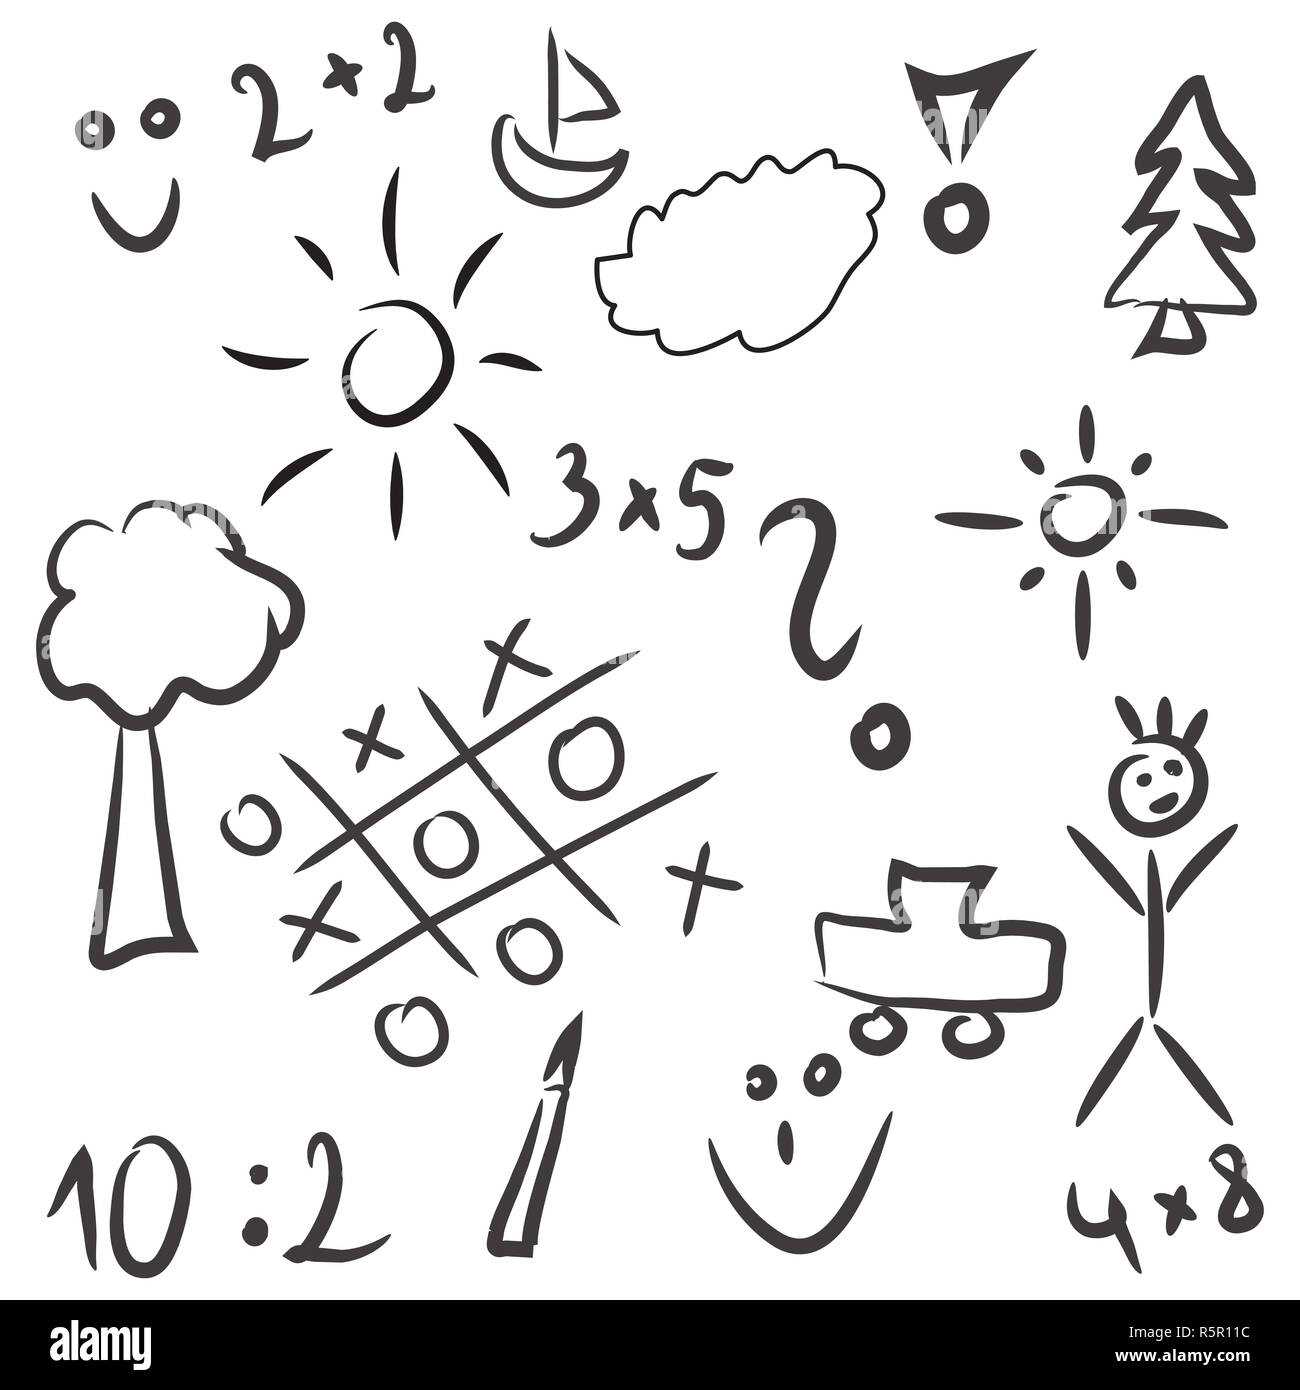 Nature Plant Drawings Silhouette Cartoon High Resolution Stock Photography And Images Alamy